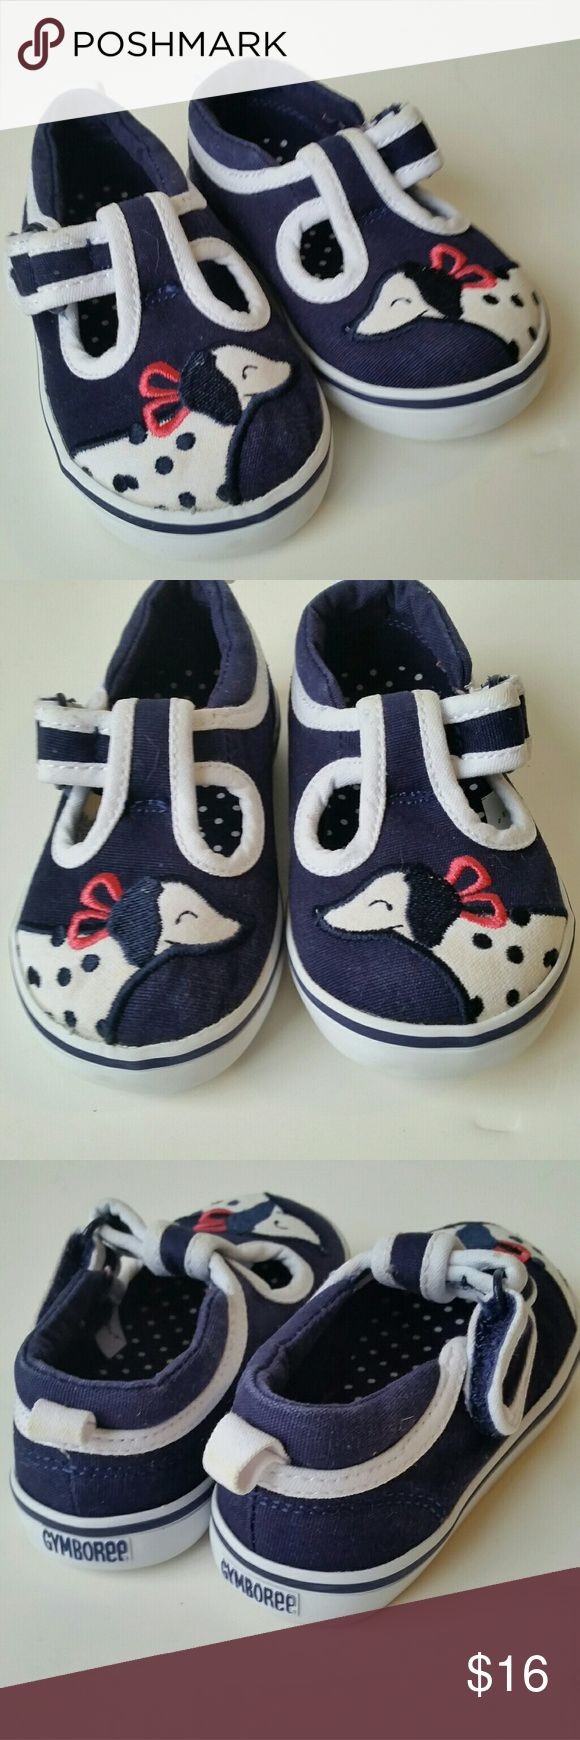 Gymboree Baby Dalmatian Shoes Simply adorable navy and white Mary Jane Shoes with Dalmatian dogs.  Excellent condition. Gymboree Shoes